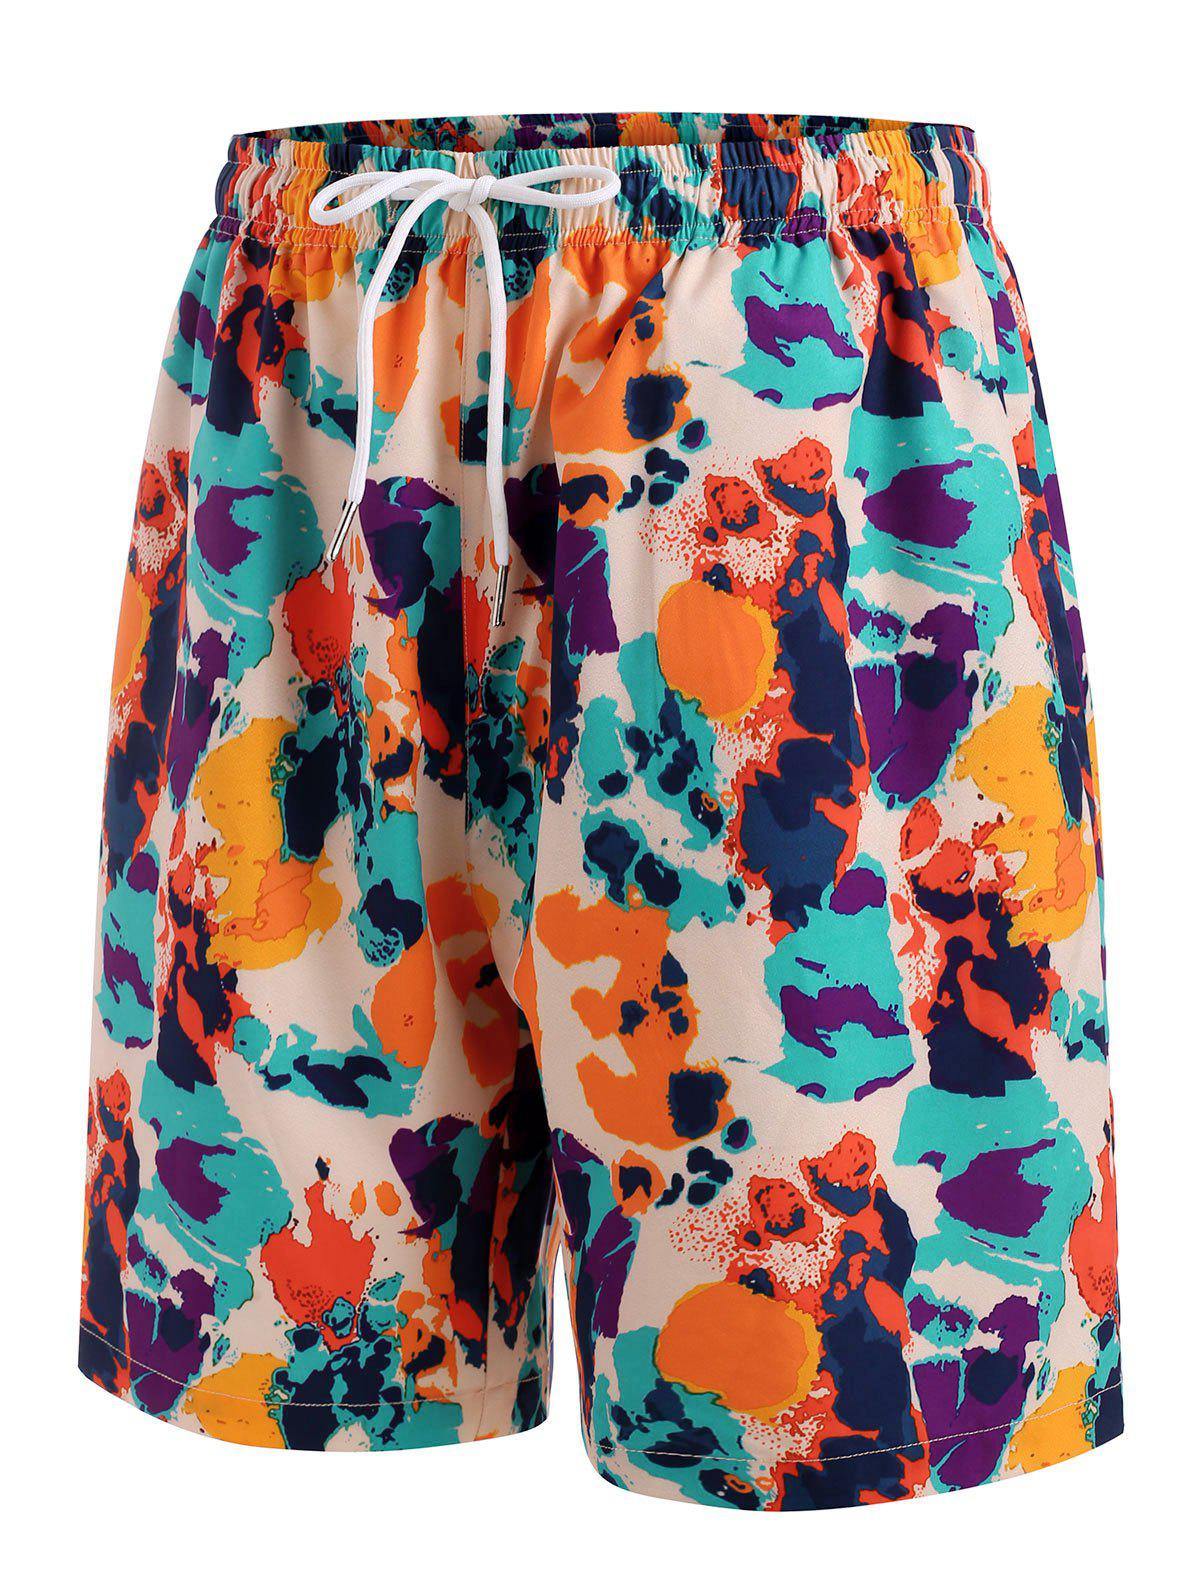 Fancy Drawstring Colorful Print Casual Shorts